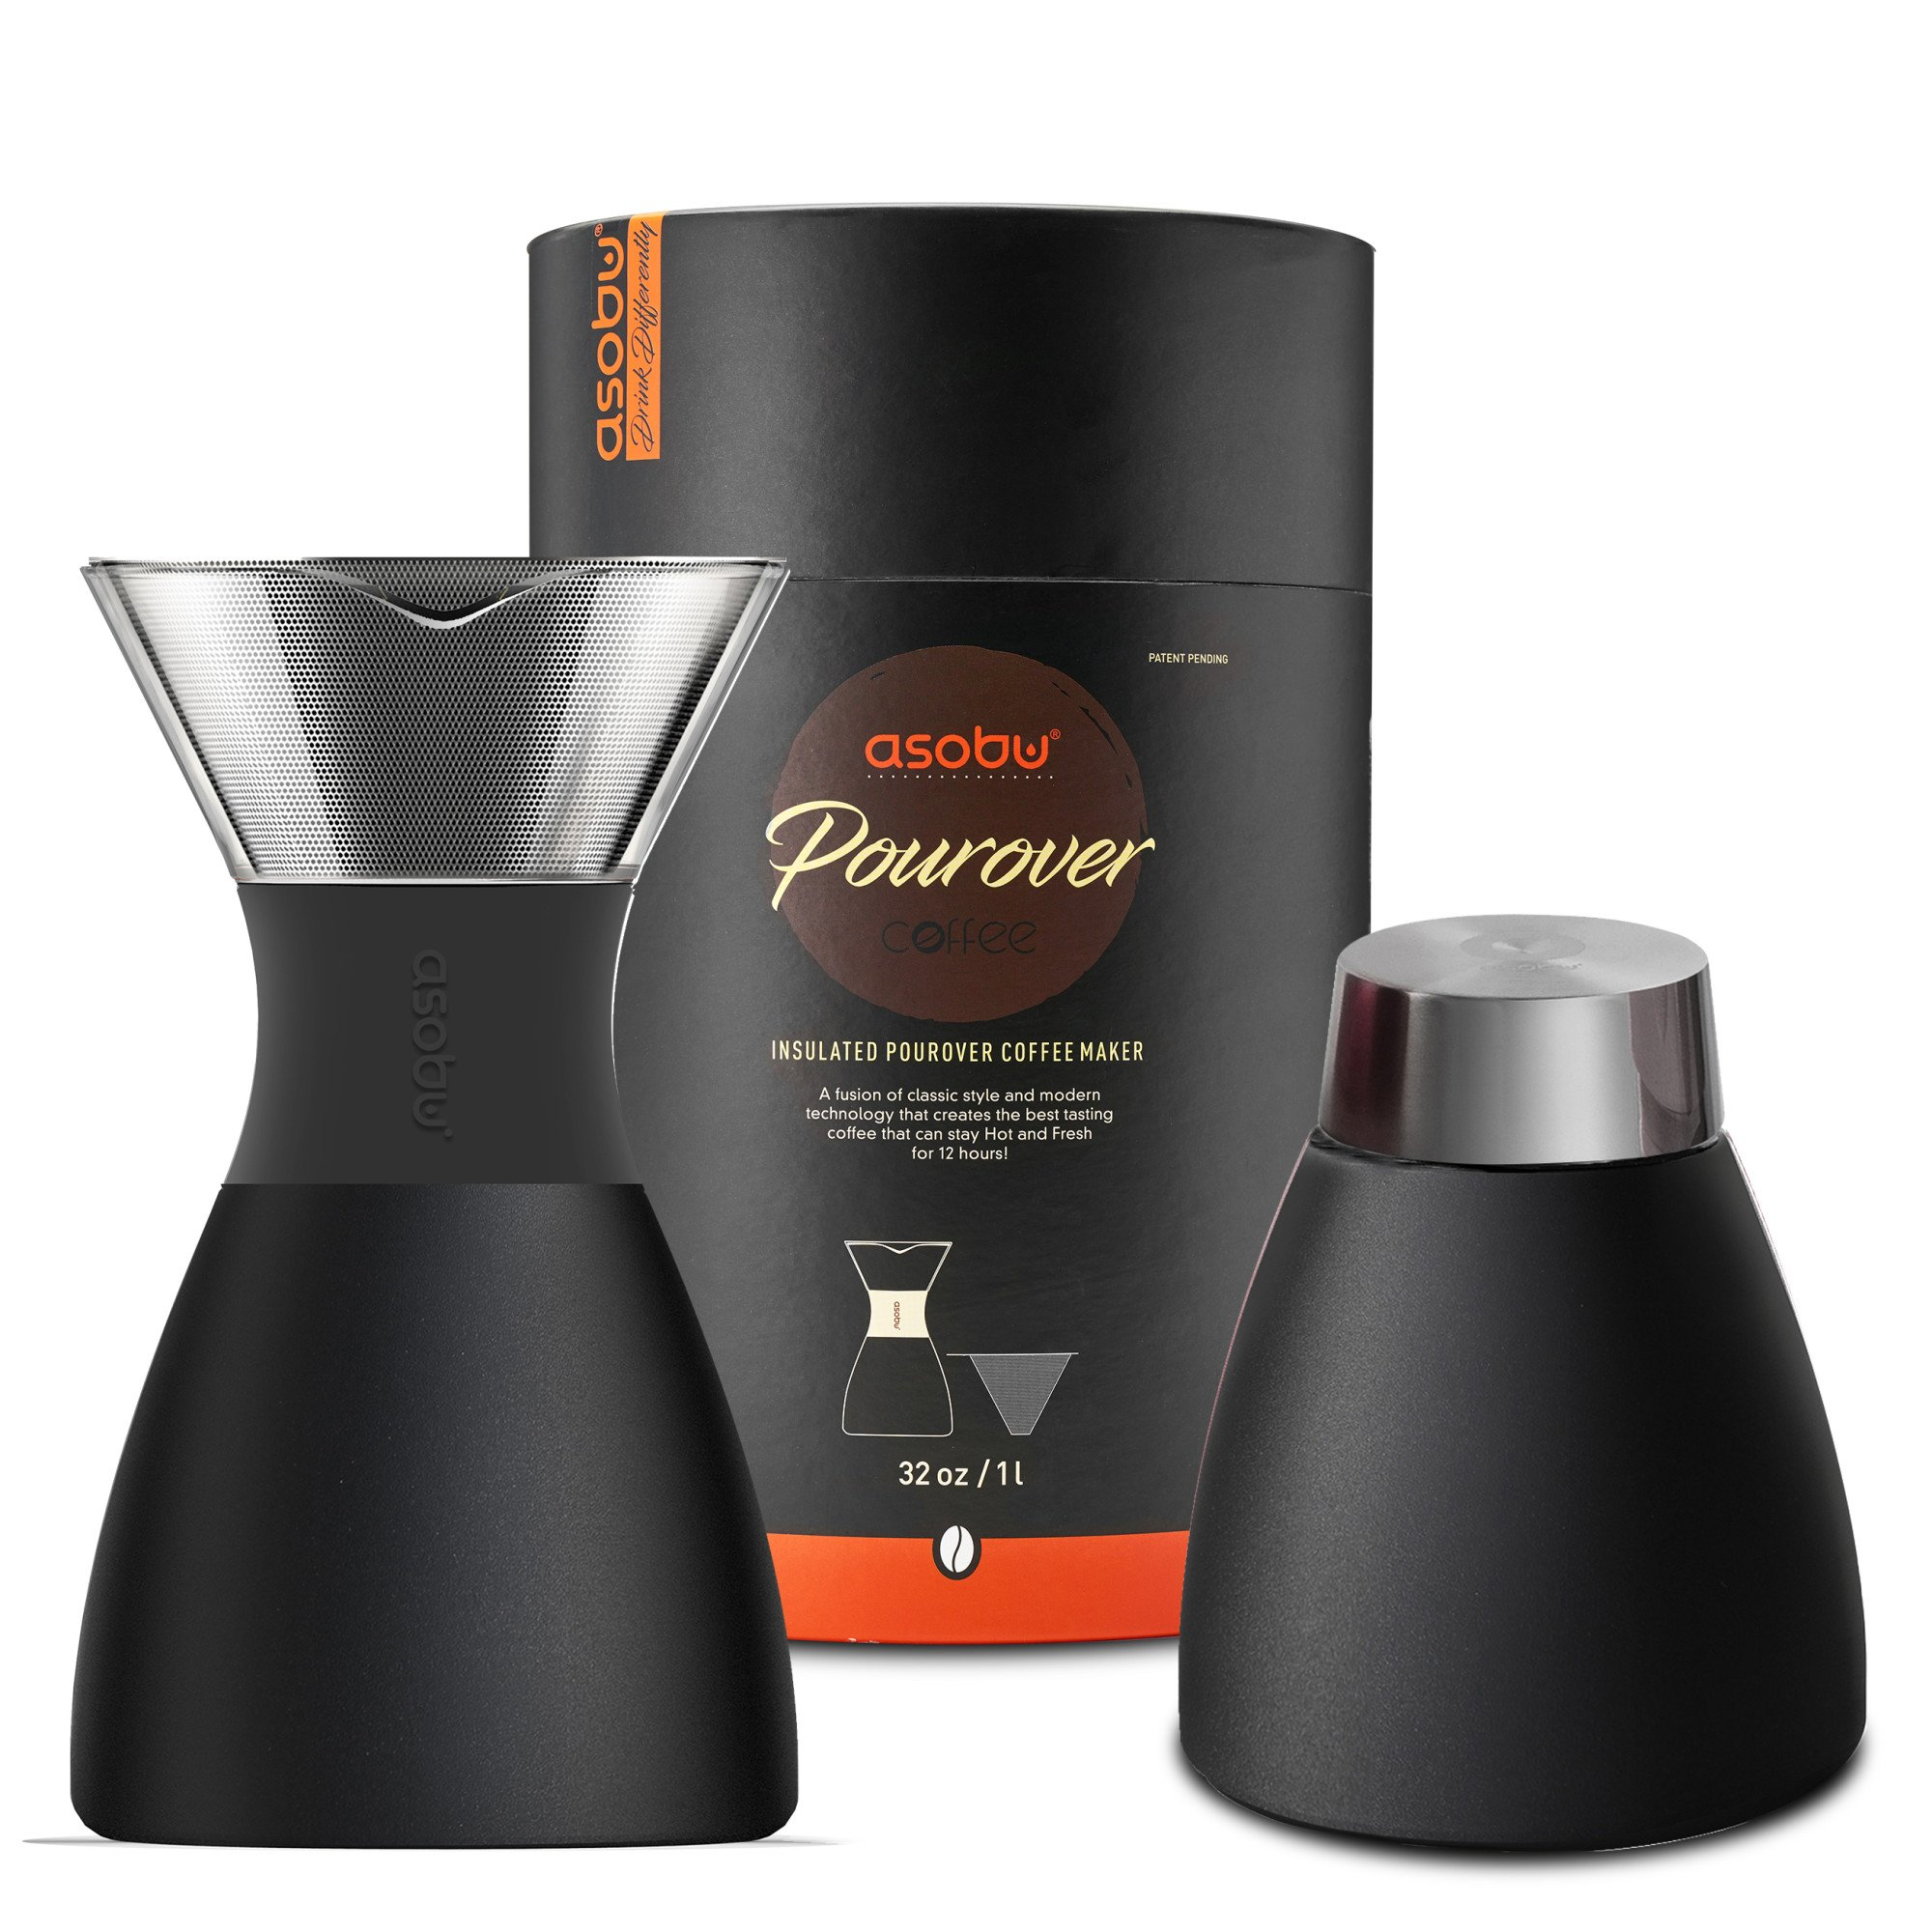 Asobu Black Insulated Pour Over Coffee Maker (32 oz.) Double-Wall Vacuum, Stainless-Steel Filter, Stays Hot Up to 12 Hours